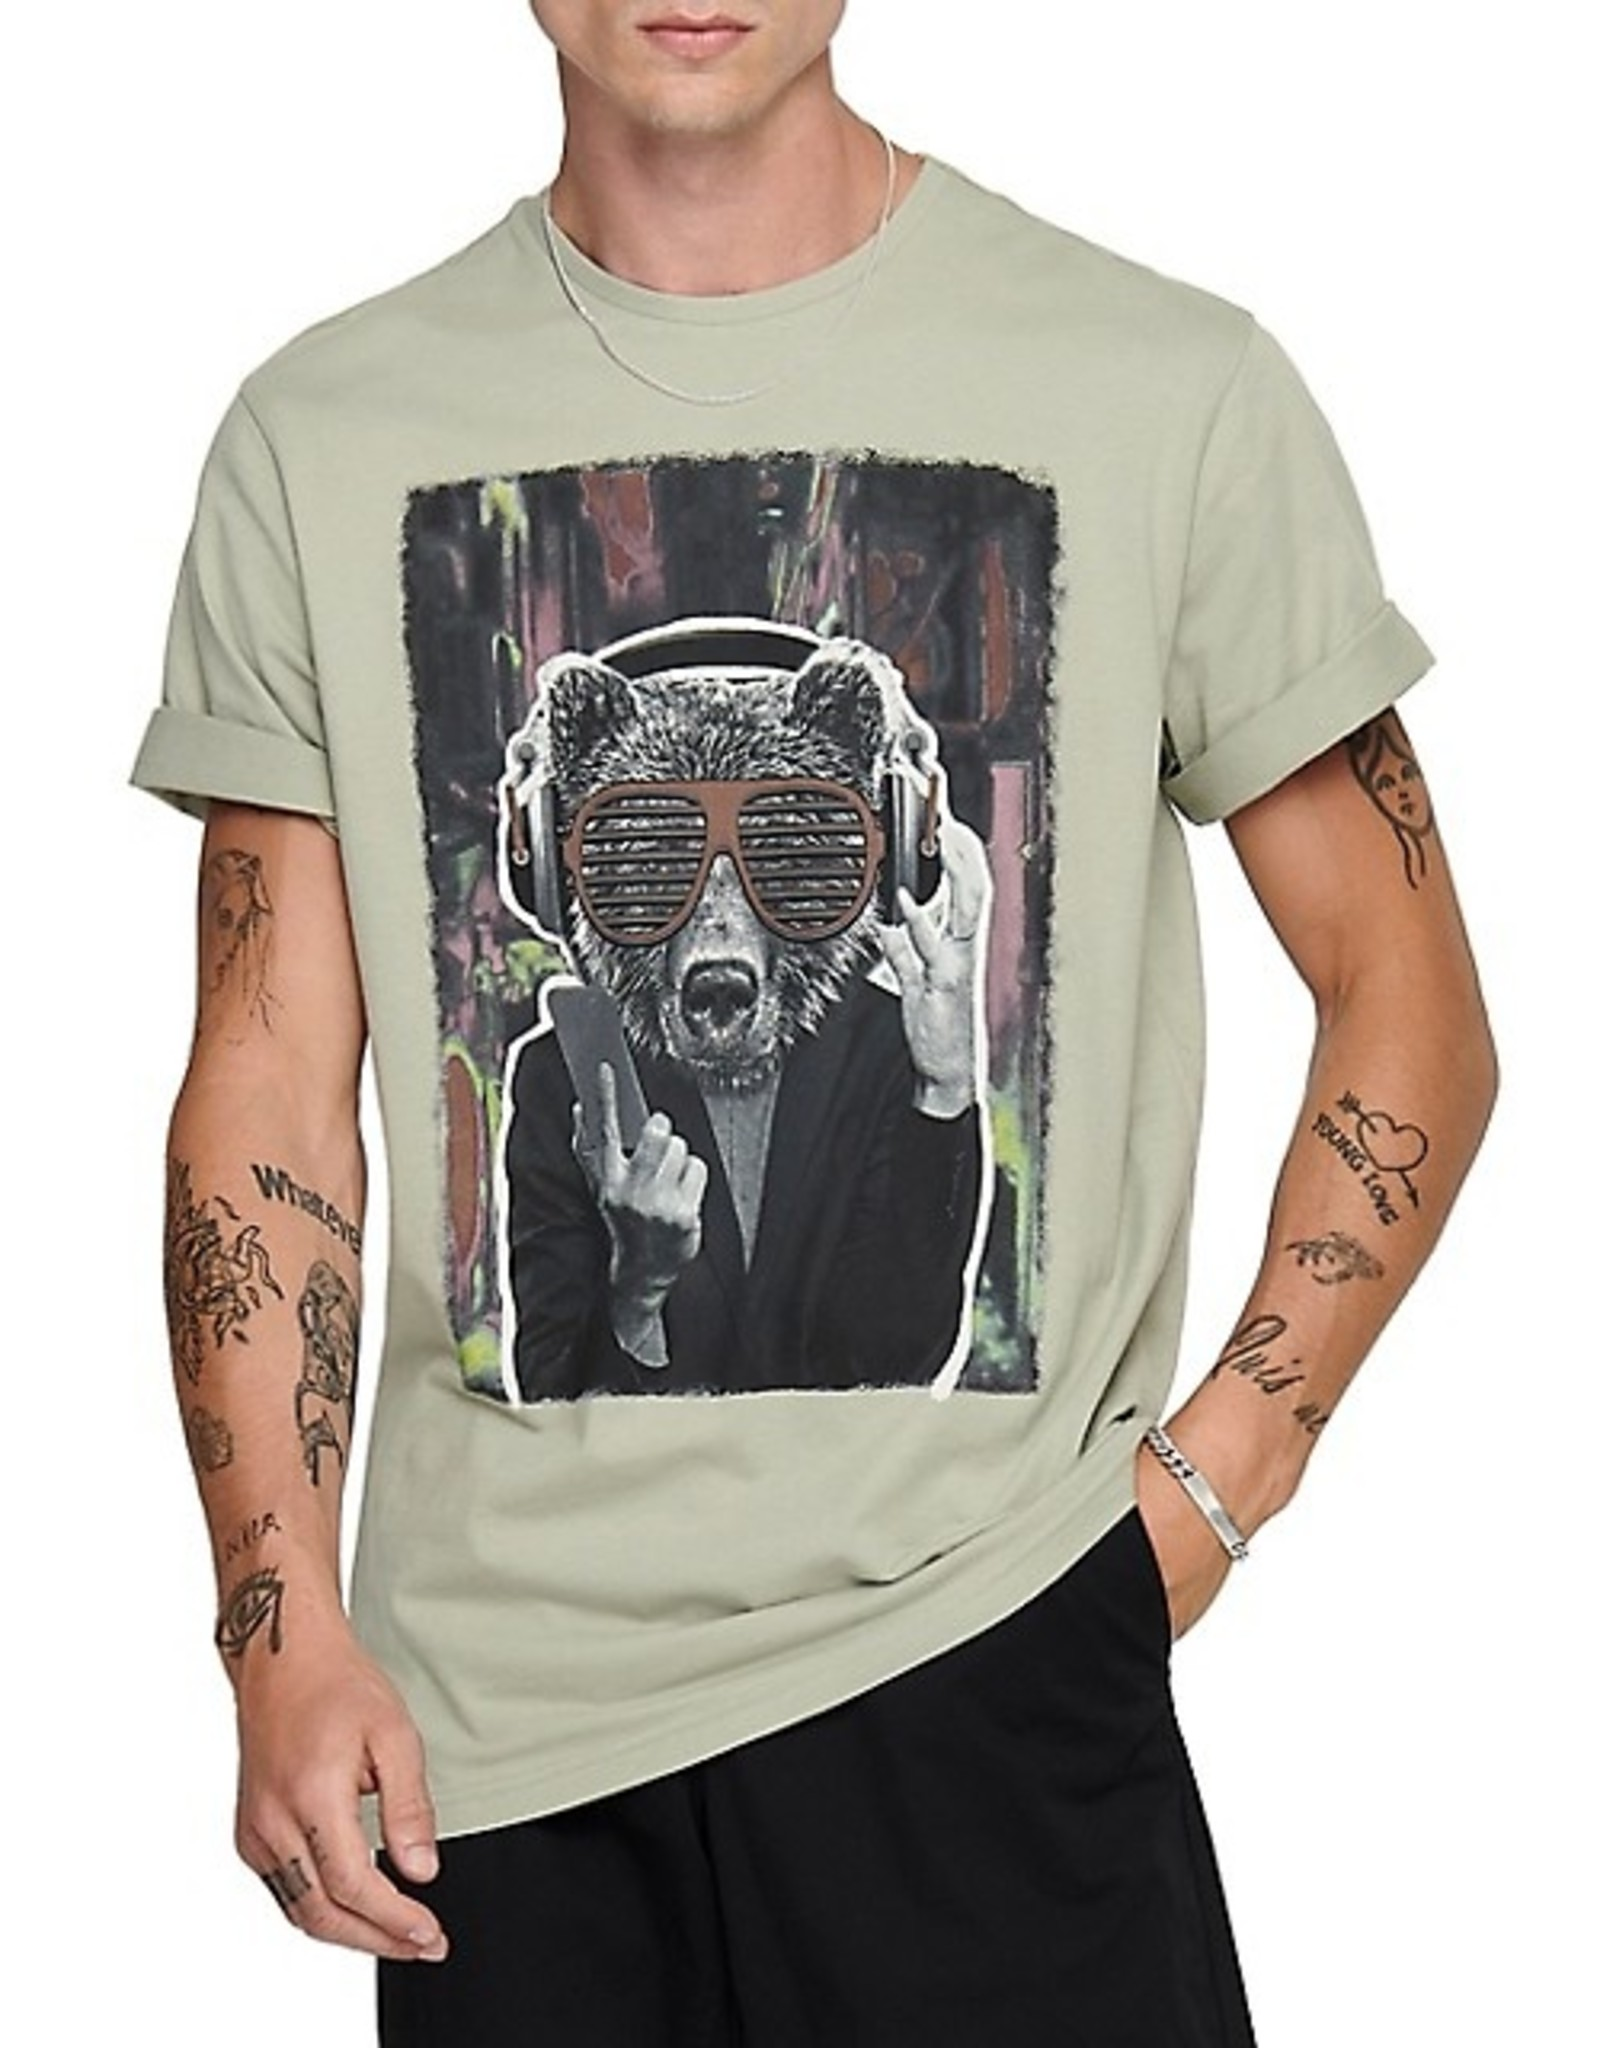 ONLY & SONS SEAGRASS BEAR T-SHIRT